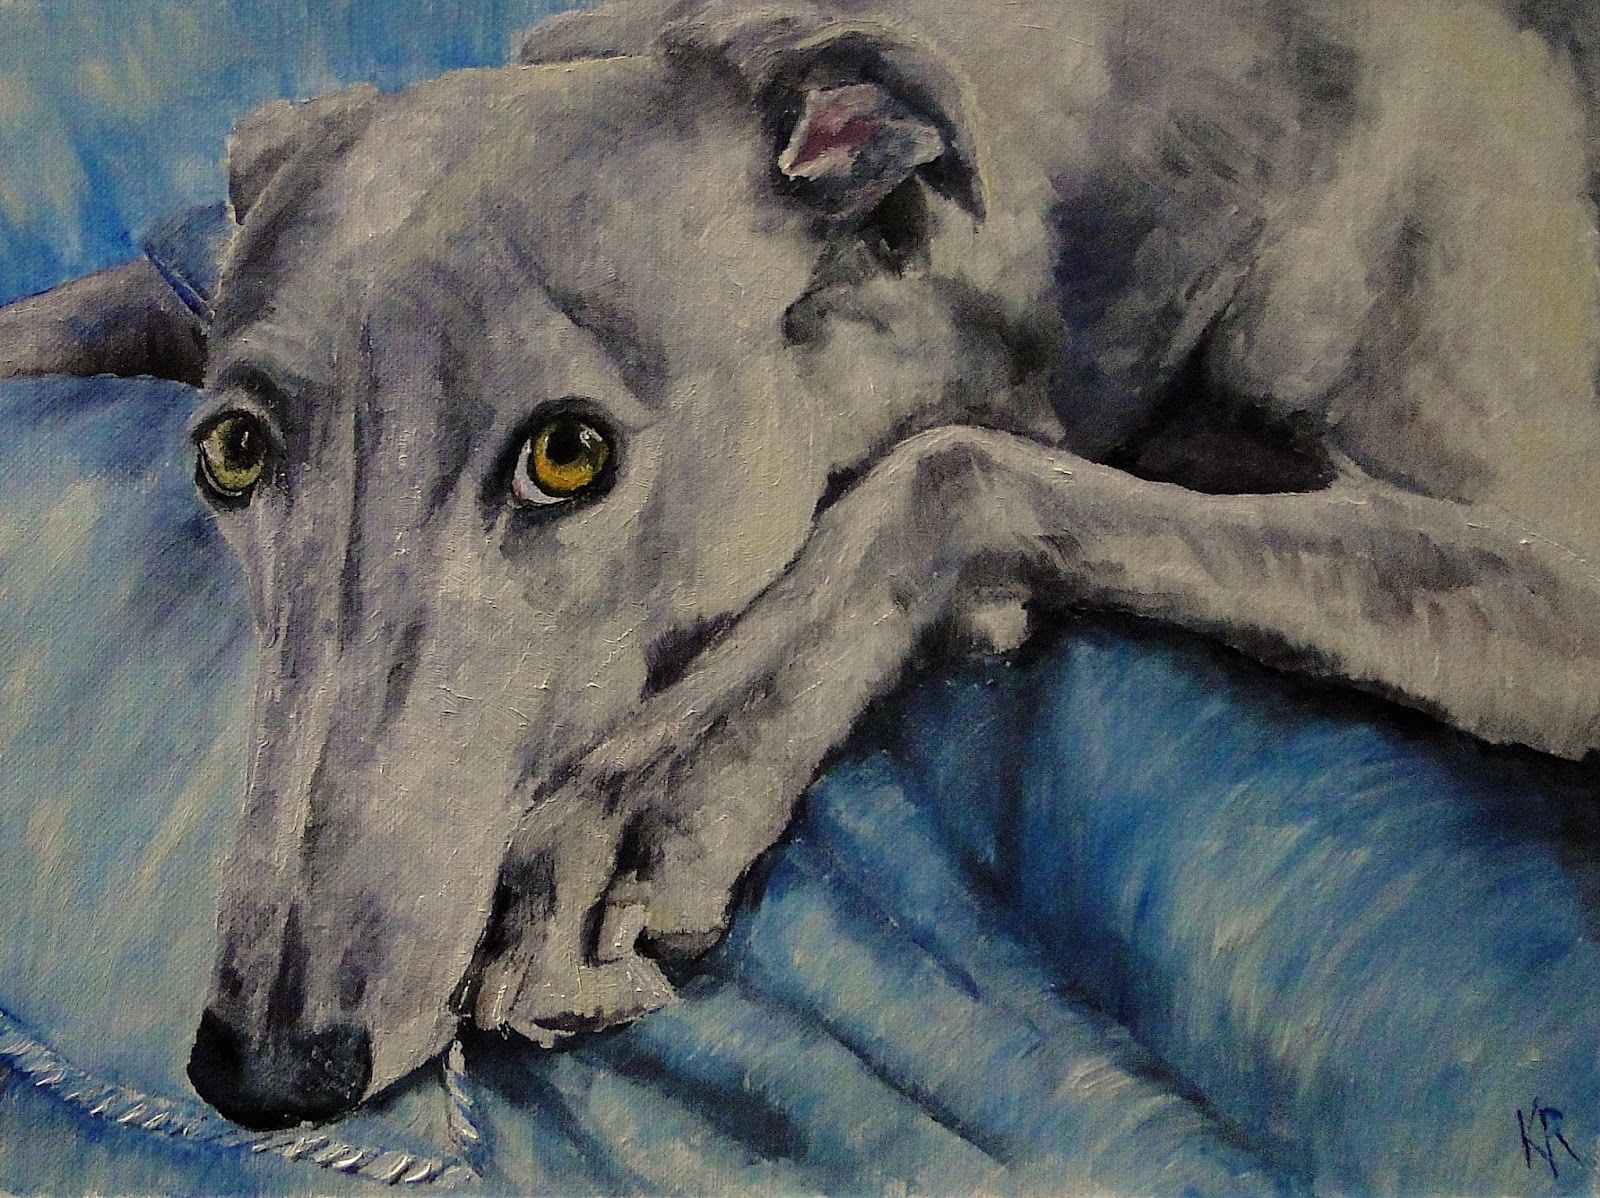 oil painting, retired greyhound, Blue Boy, oils on linen, how to paint a greyhound, pet portrait by karen